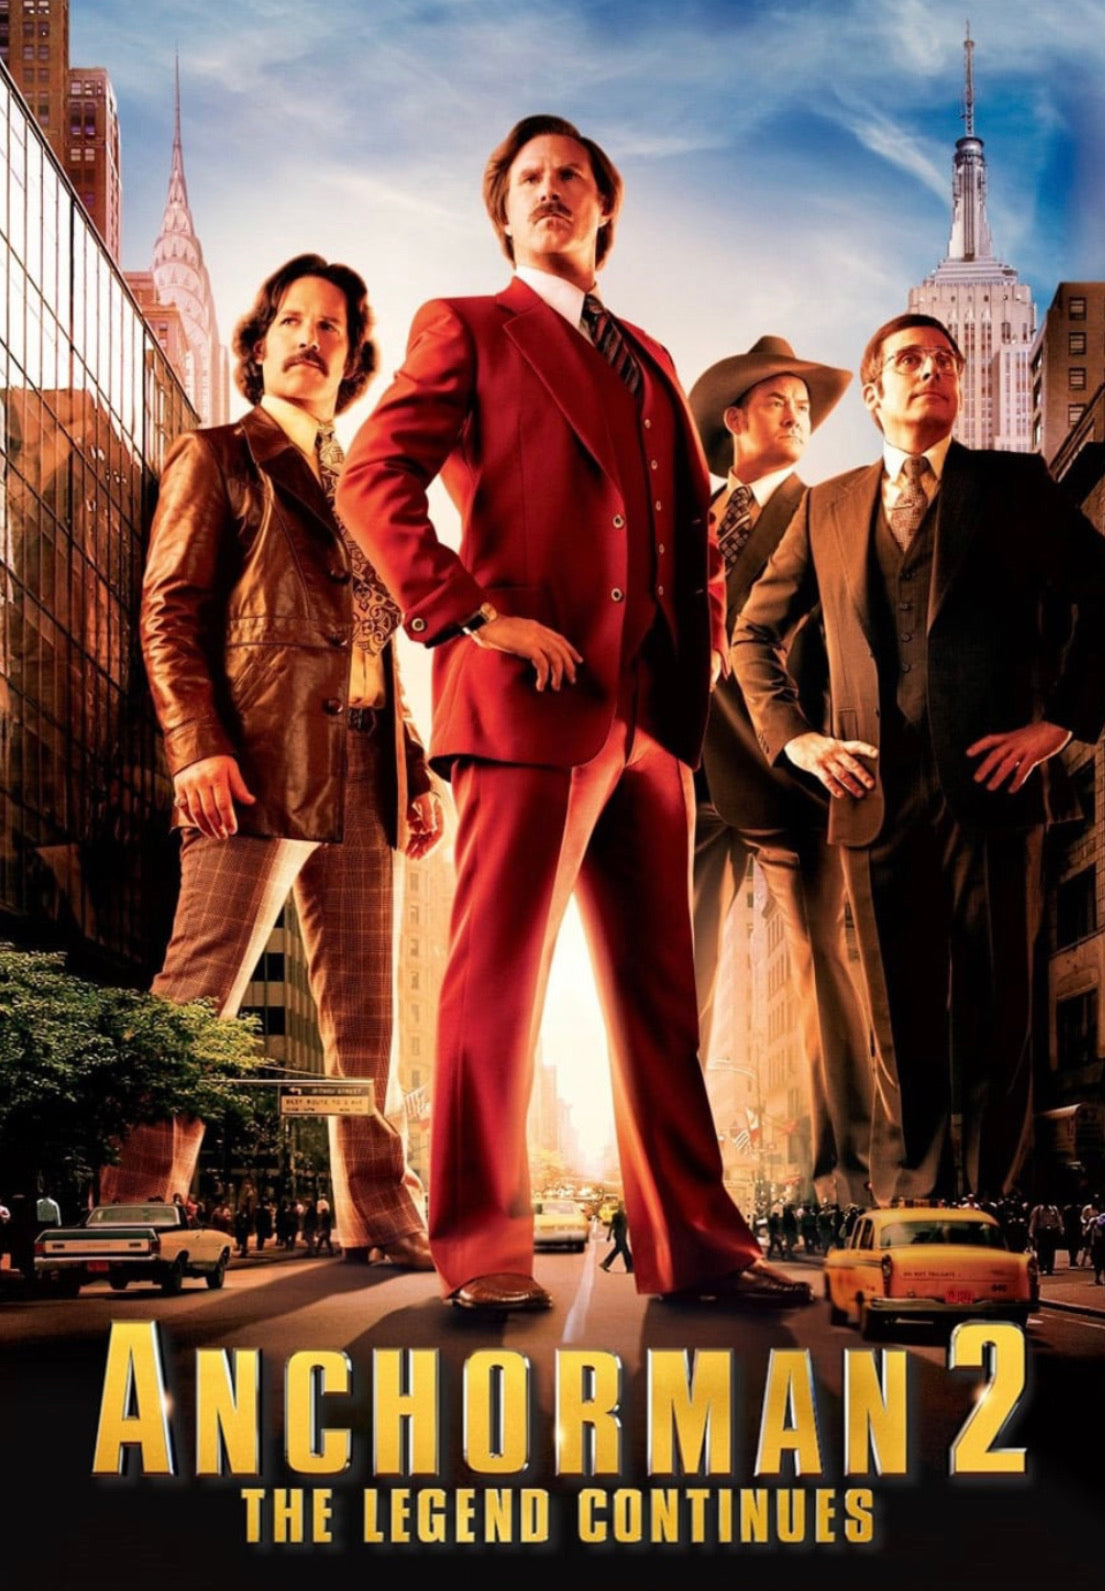 Anchorman 2: The Legend Continues (2013) Vudu HD redemption only